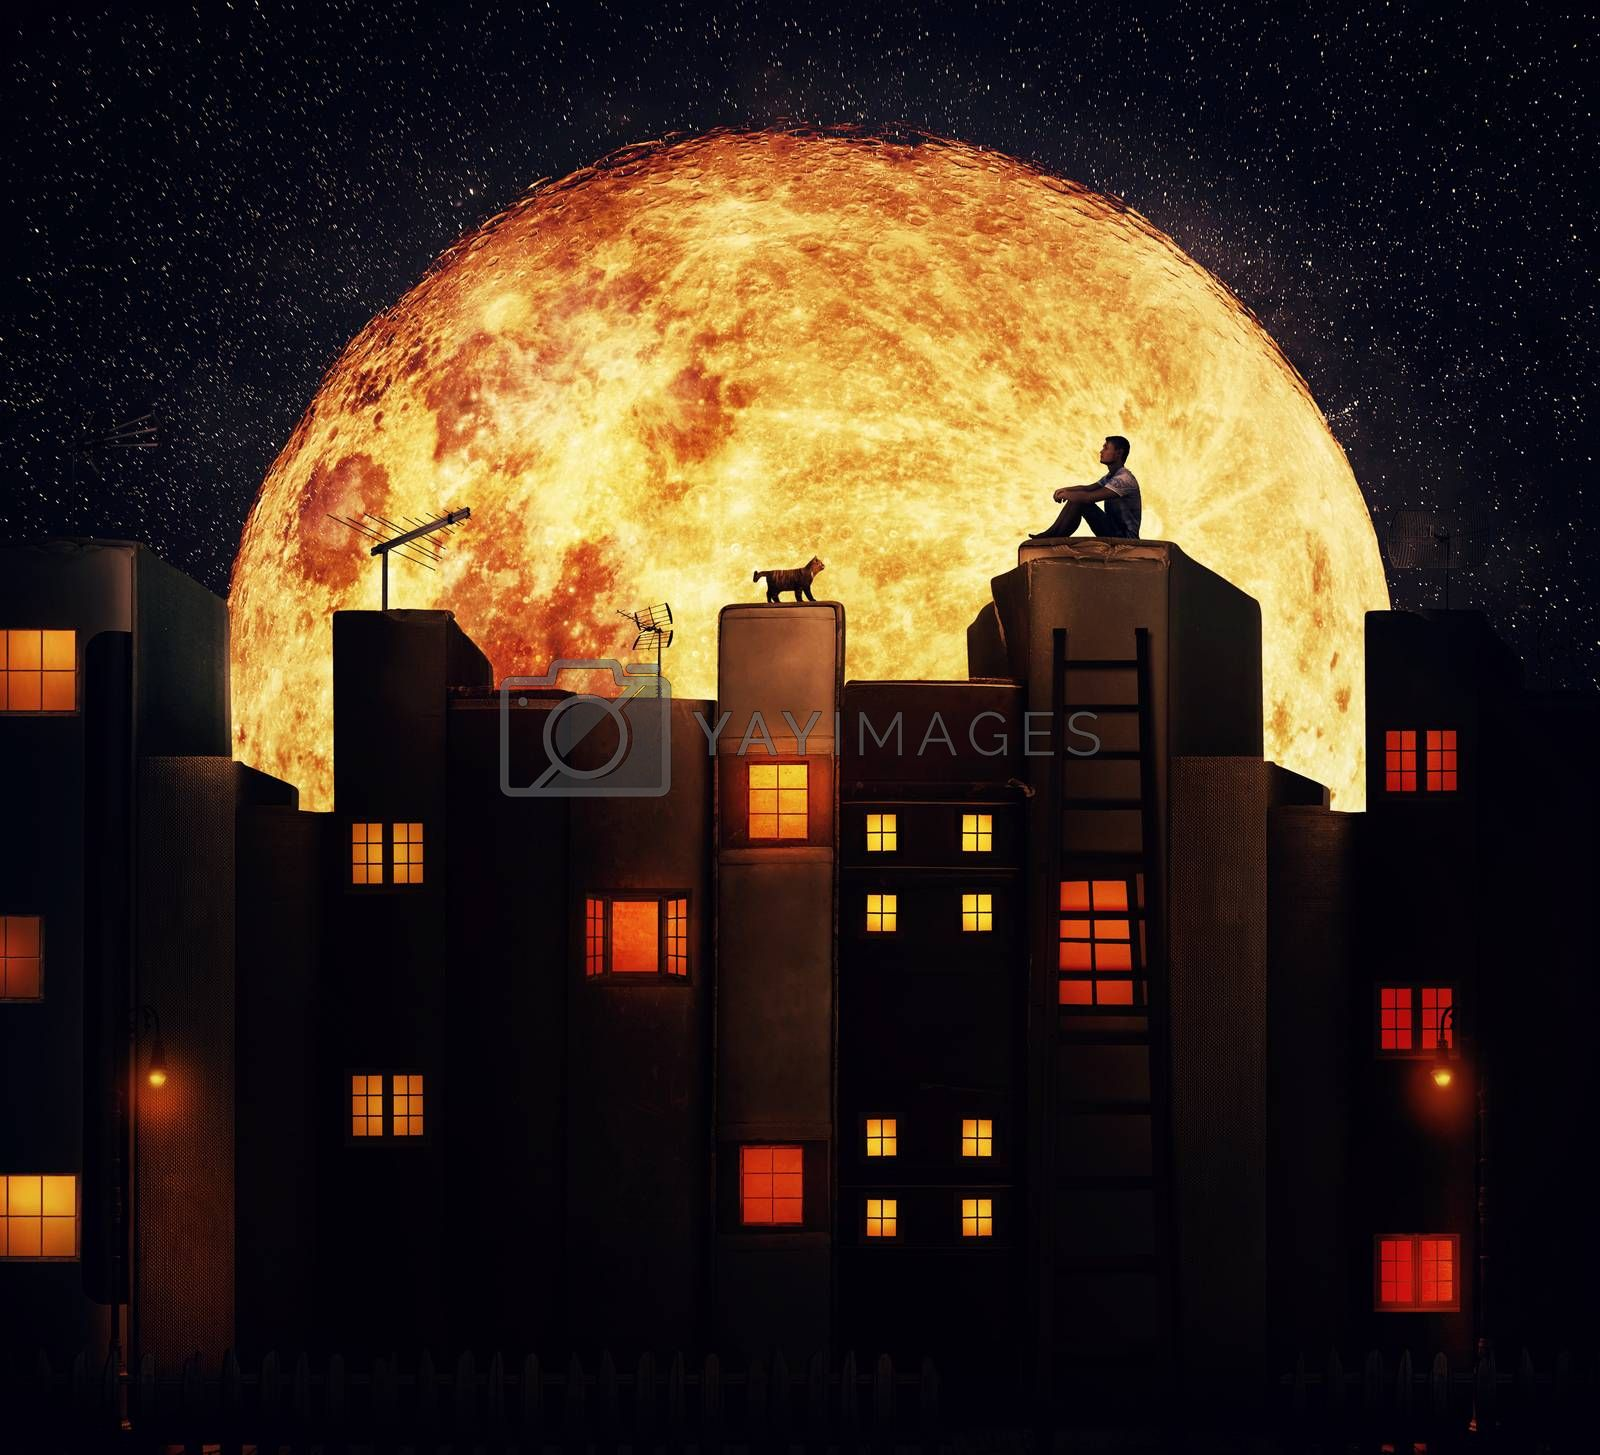 Boy with a cat sitting on the rooftop of a magic city with houses made of books. Tale night scene with a giant full moon in a fantasy town.